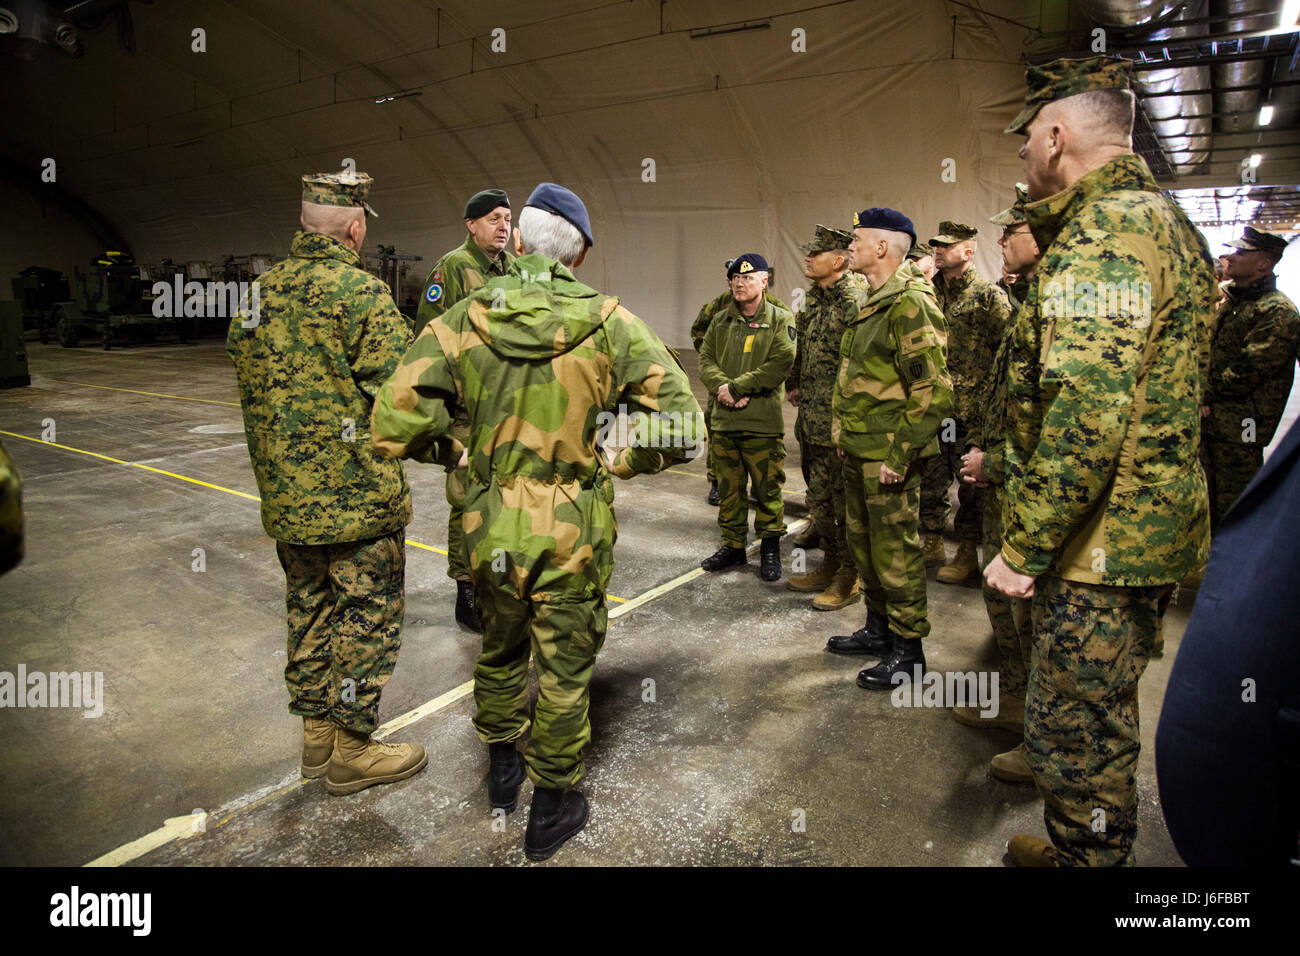 Capt. Ola Gilberg, Frigaard Cave Manager, gives U.S. Marines and Norwegians a tour of a cave site in Norway, May Stock Photo